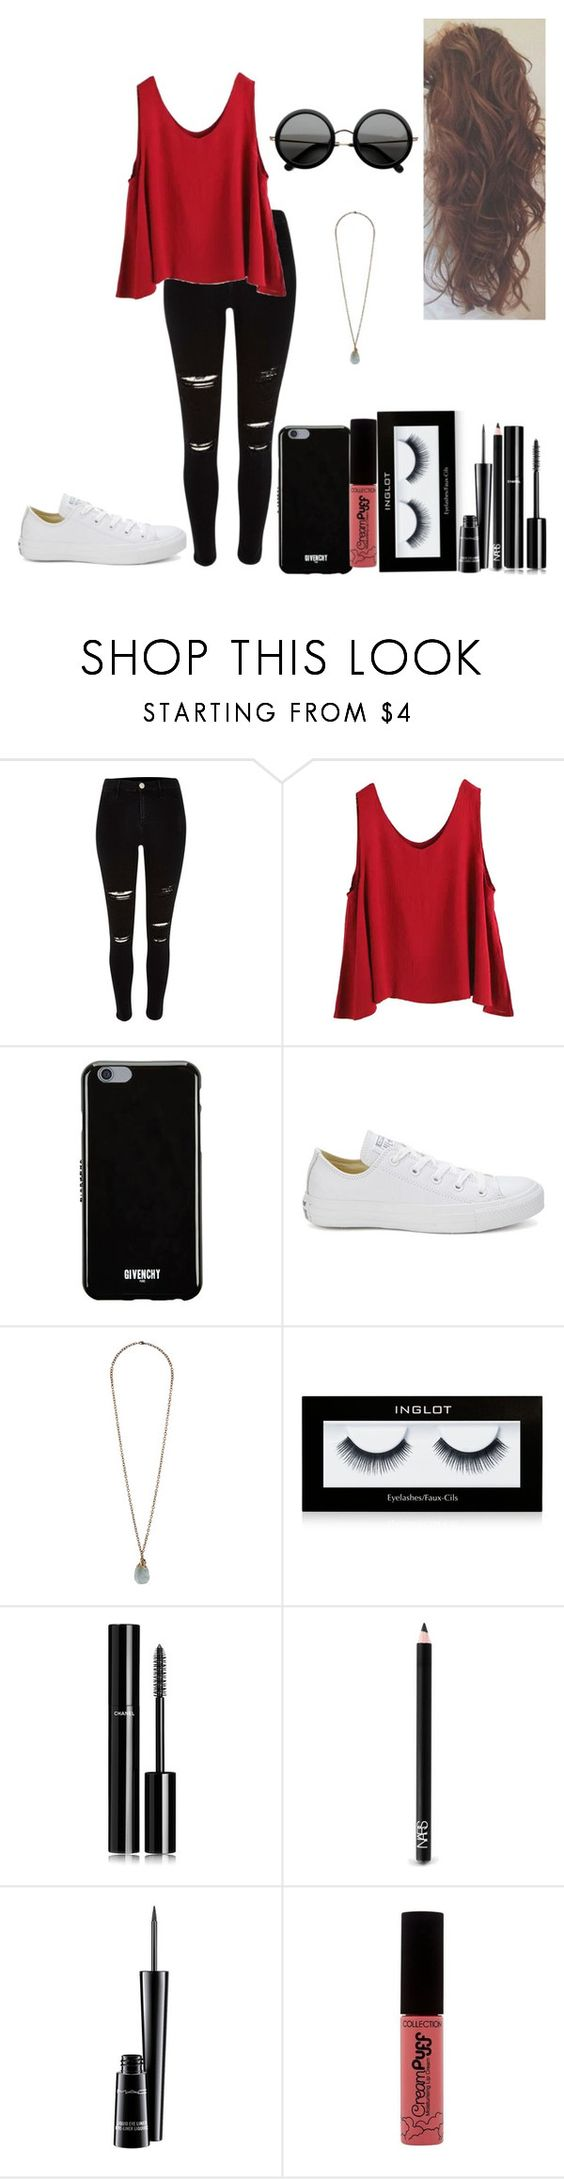 """Sem título #441"" by karen-biarmatos ❤ liked on Polyvore featuring WithChic, Givenchy, Converse, Forever 21, Inglot, Chanel, NARS Cosmetics, MAC Cosmetics and The Row"